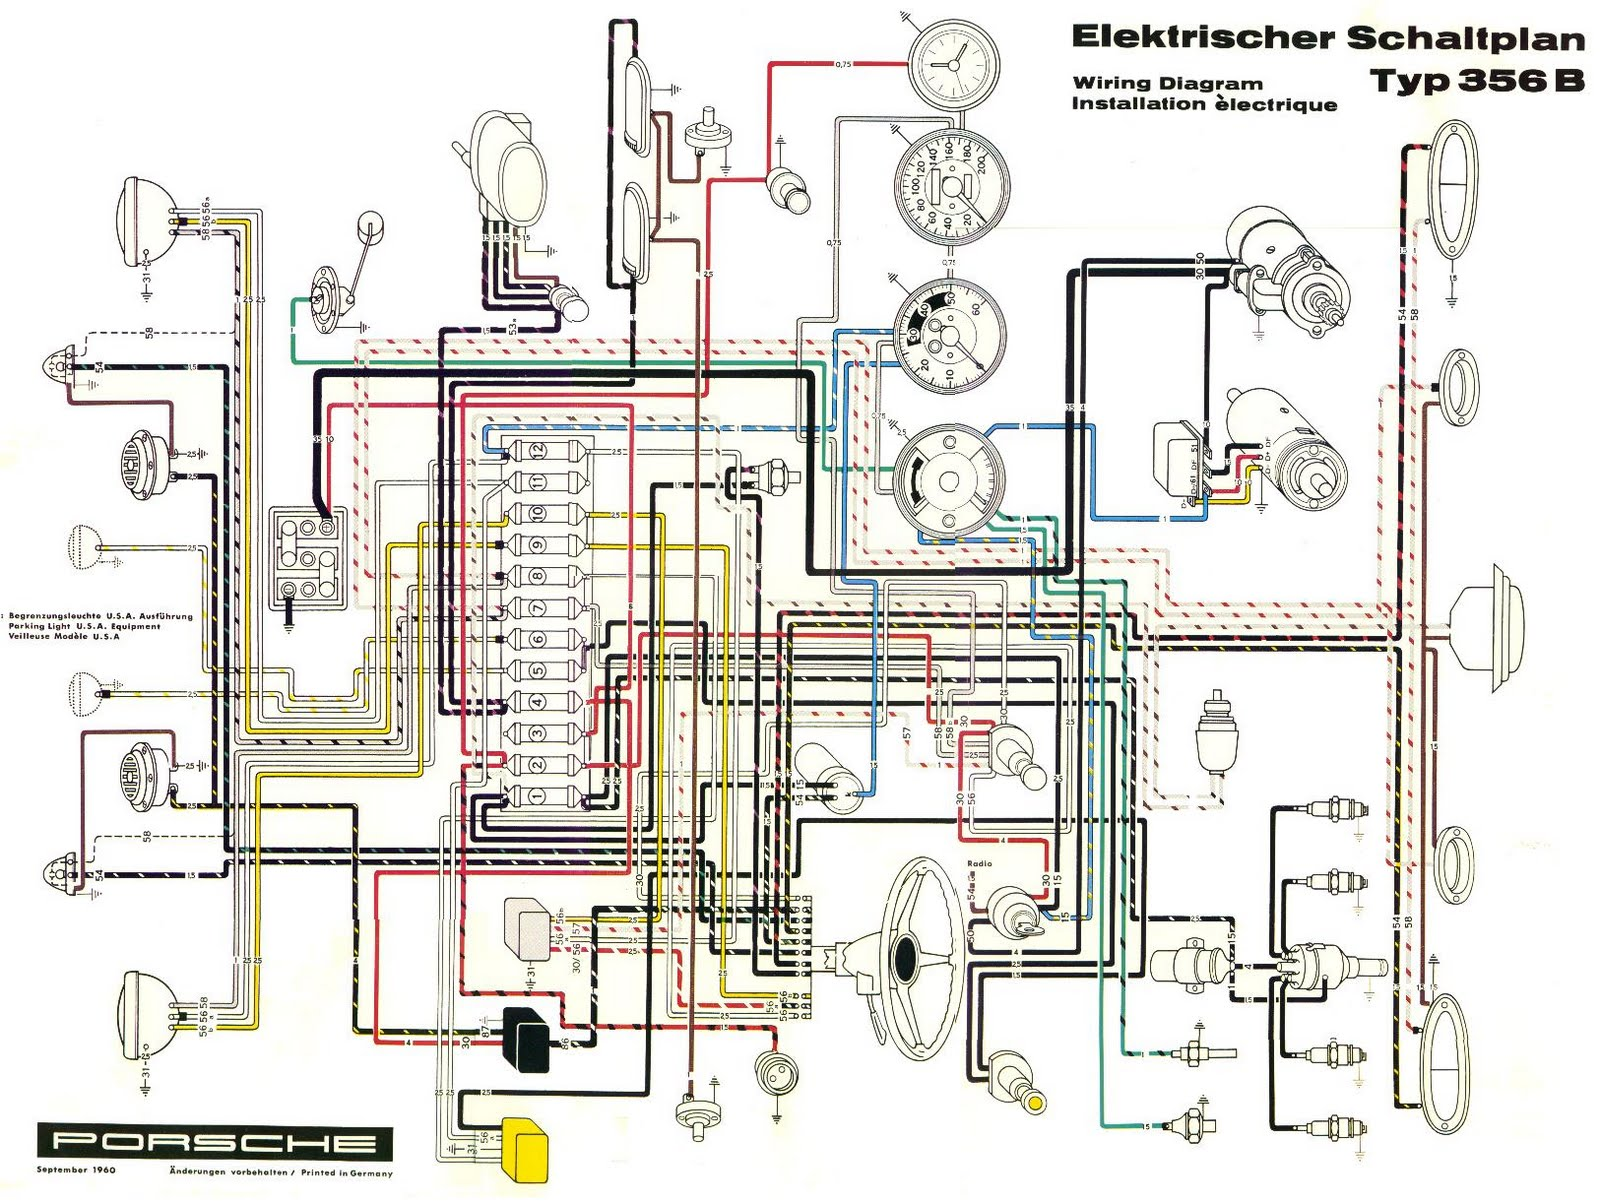 996 seat wiring diagram pdf auto electrical wiring diagram \u2022  porsche car manuals wiring diagrams pdf fault codes rh automotive manuals net wiring diagram symbols toyota electrical wiring diagram